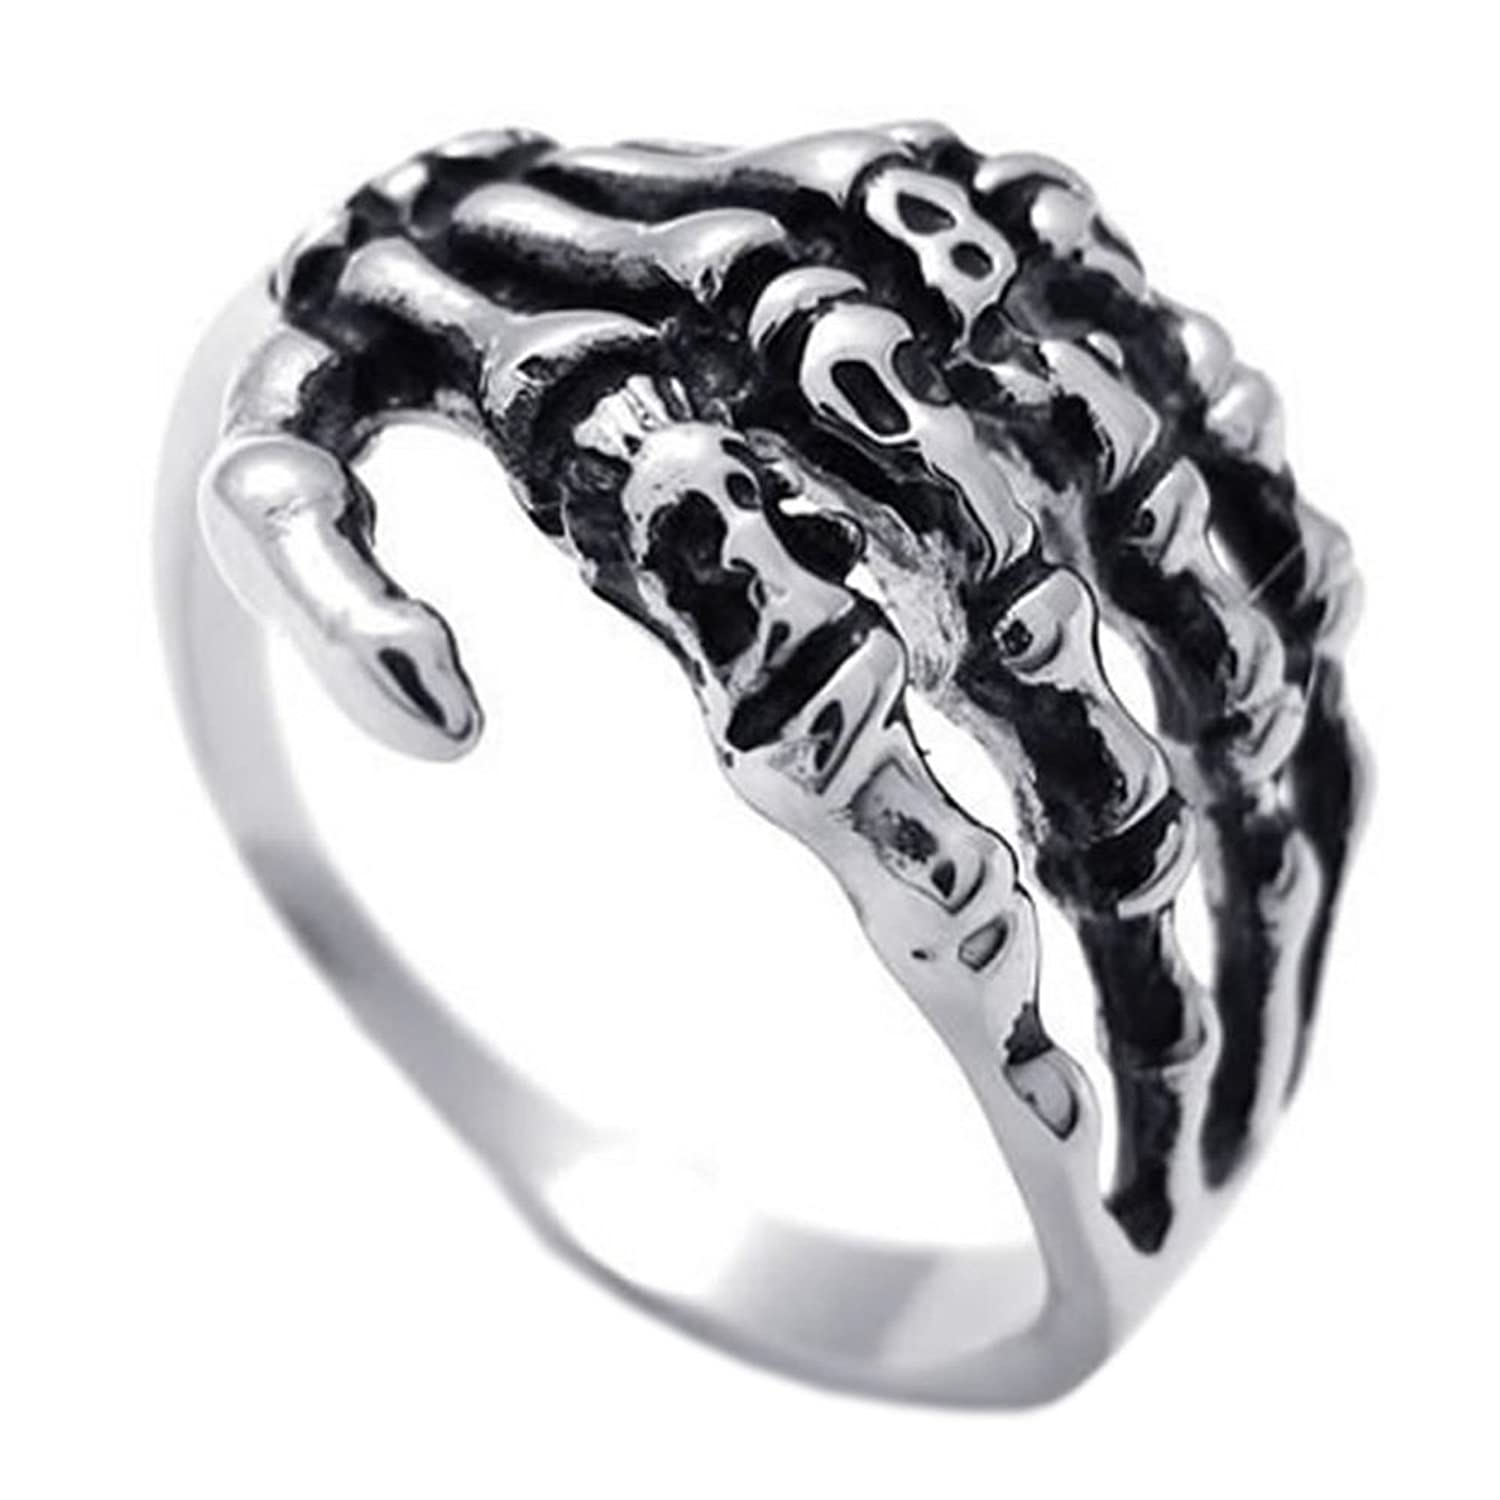 KONOV Mens Biker Tribe Gothic Stainless Steel Skull Skeleton Bone Hand Ring, Silver